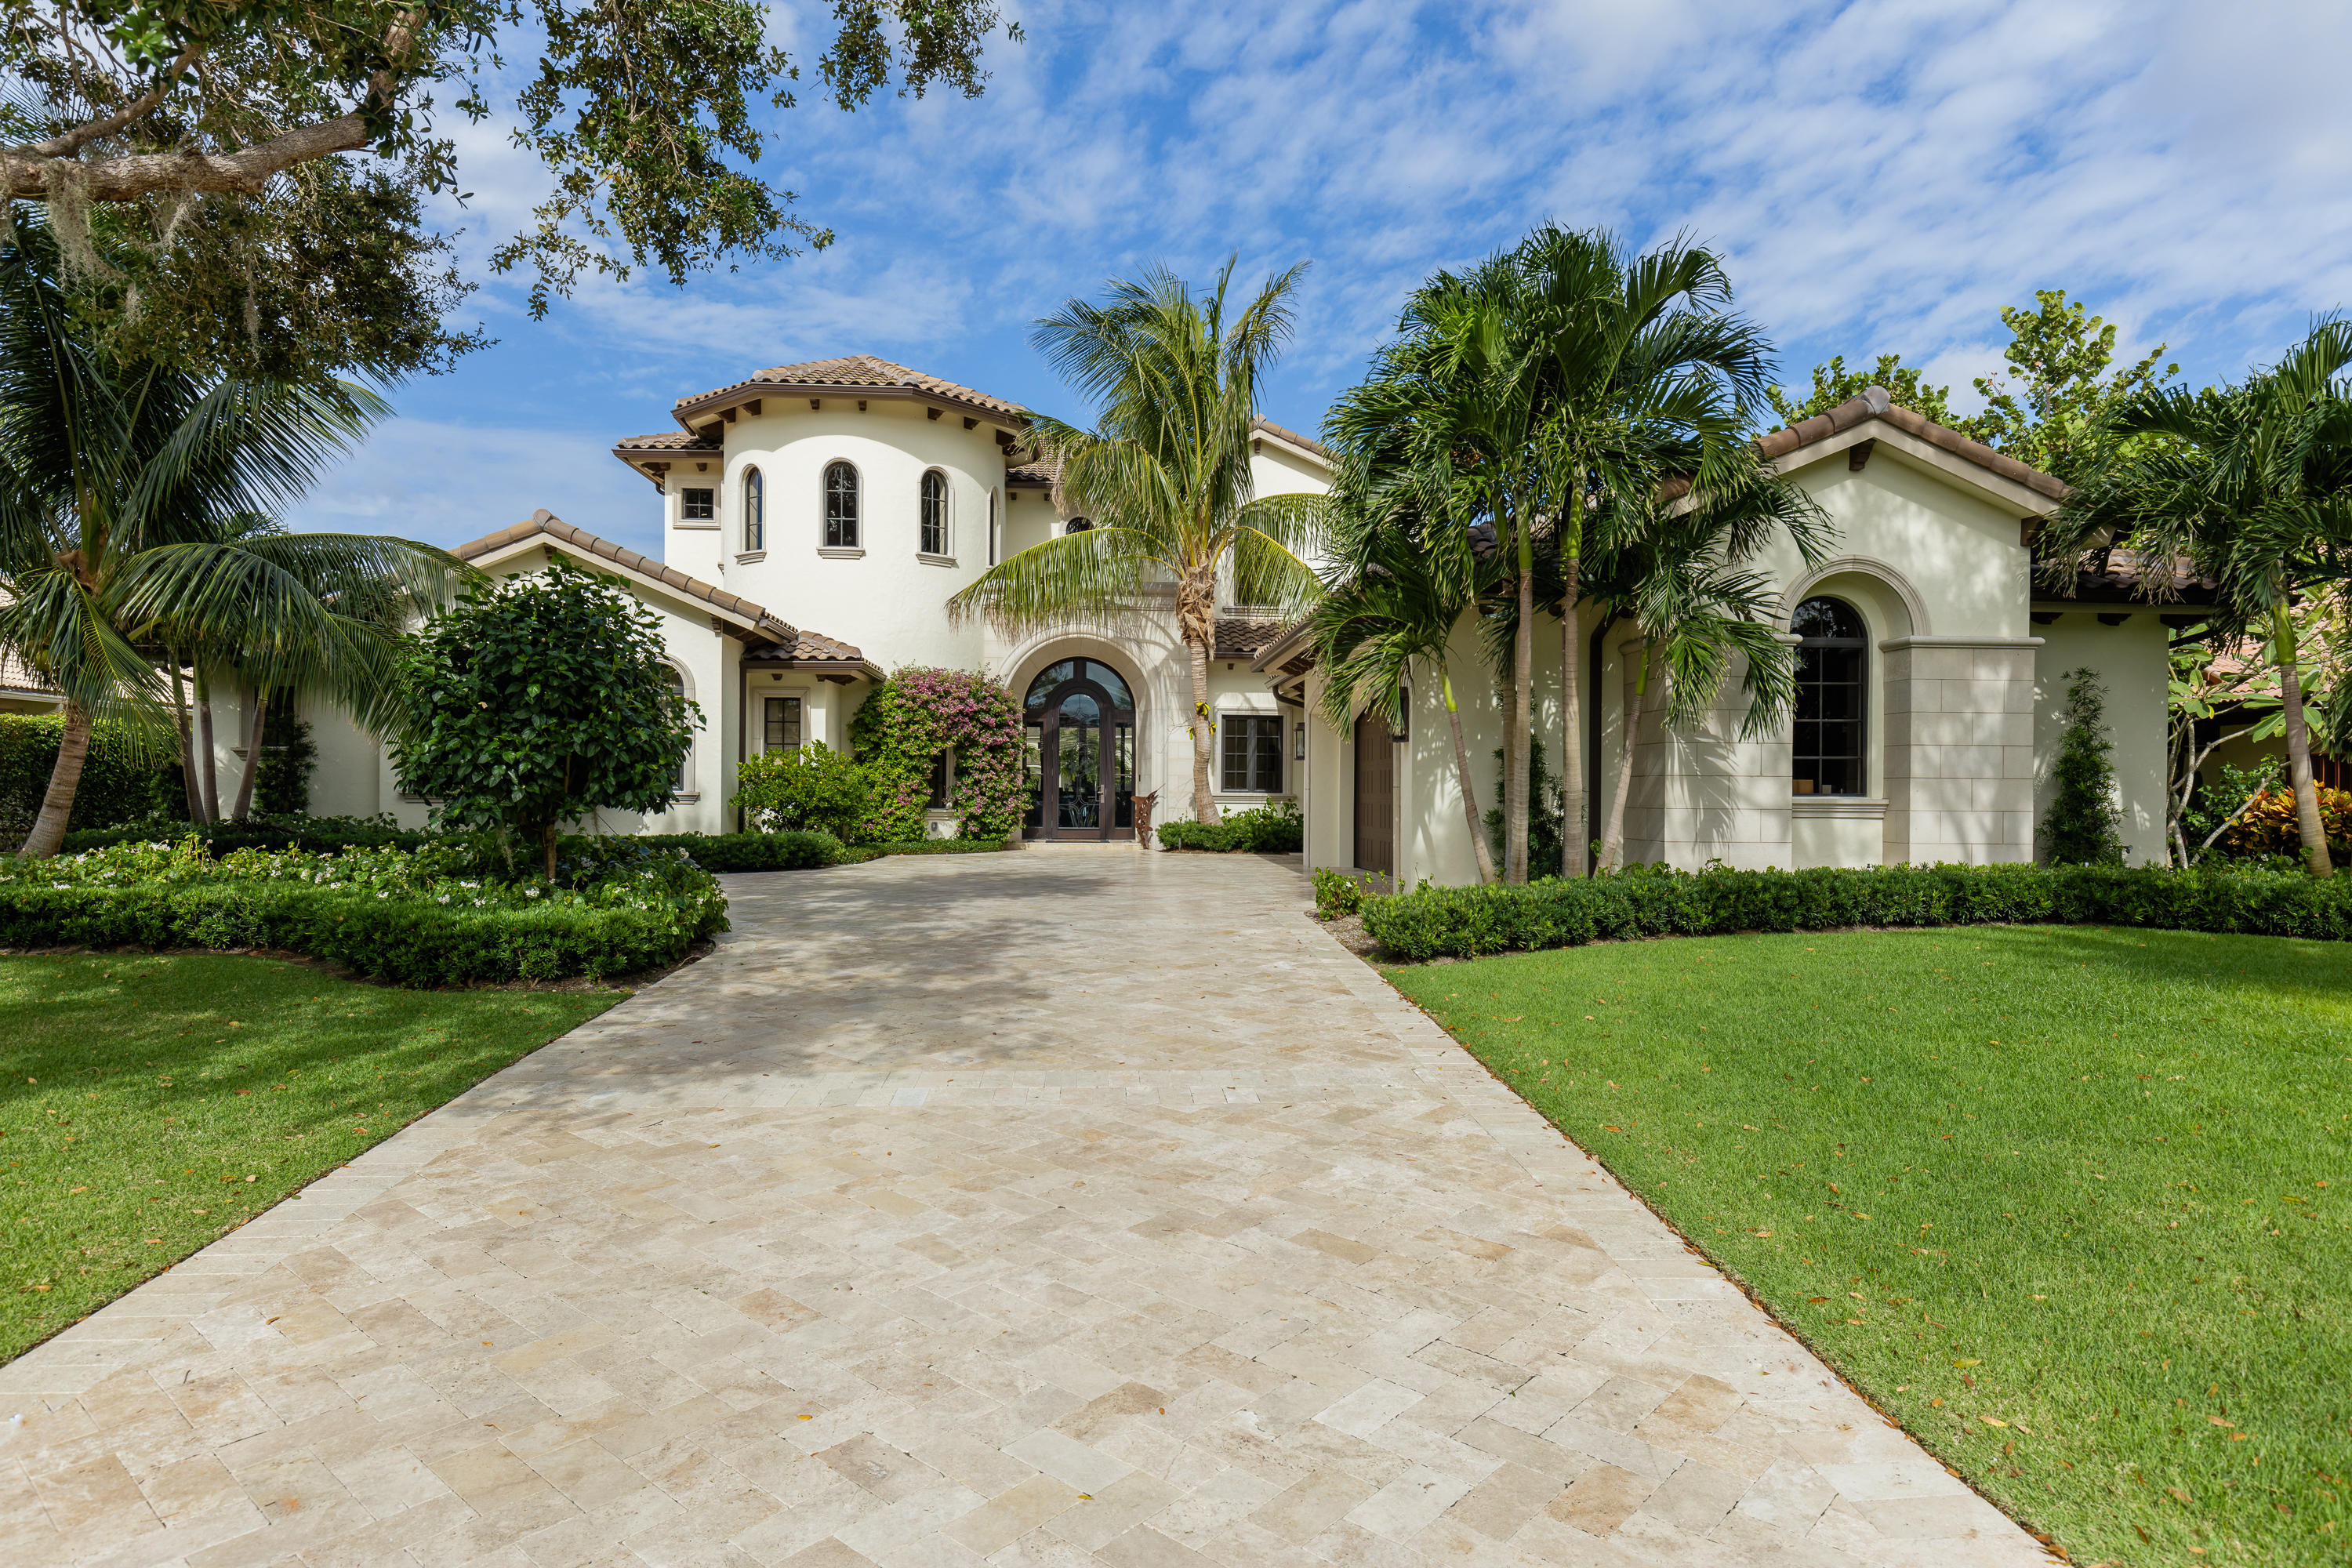 New Home for sale at 110 Quayside Drive in Jupiter